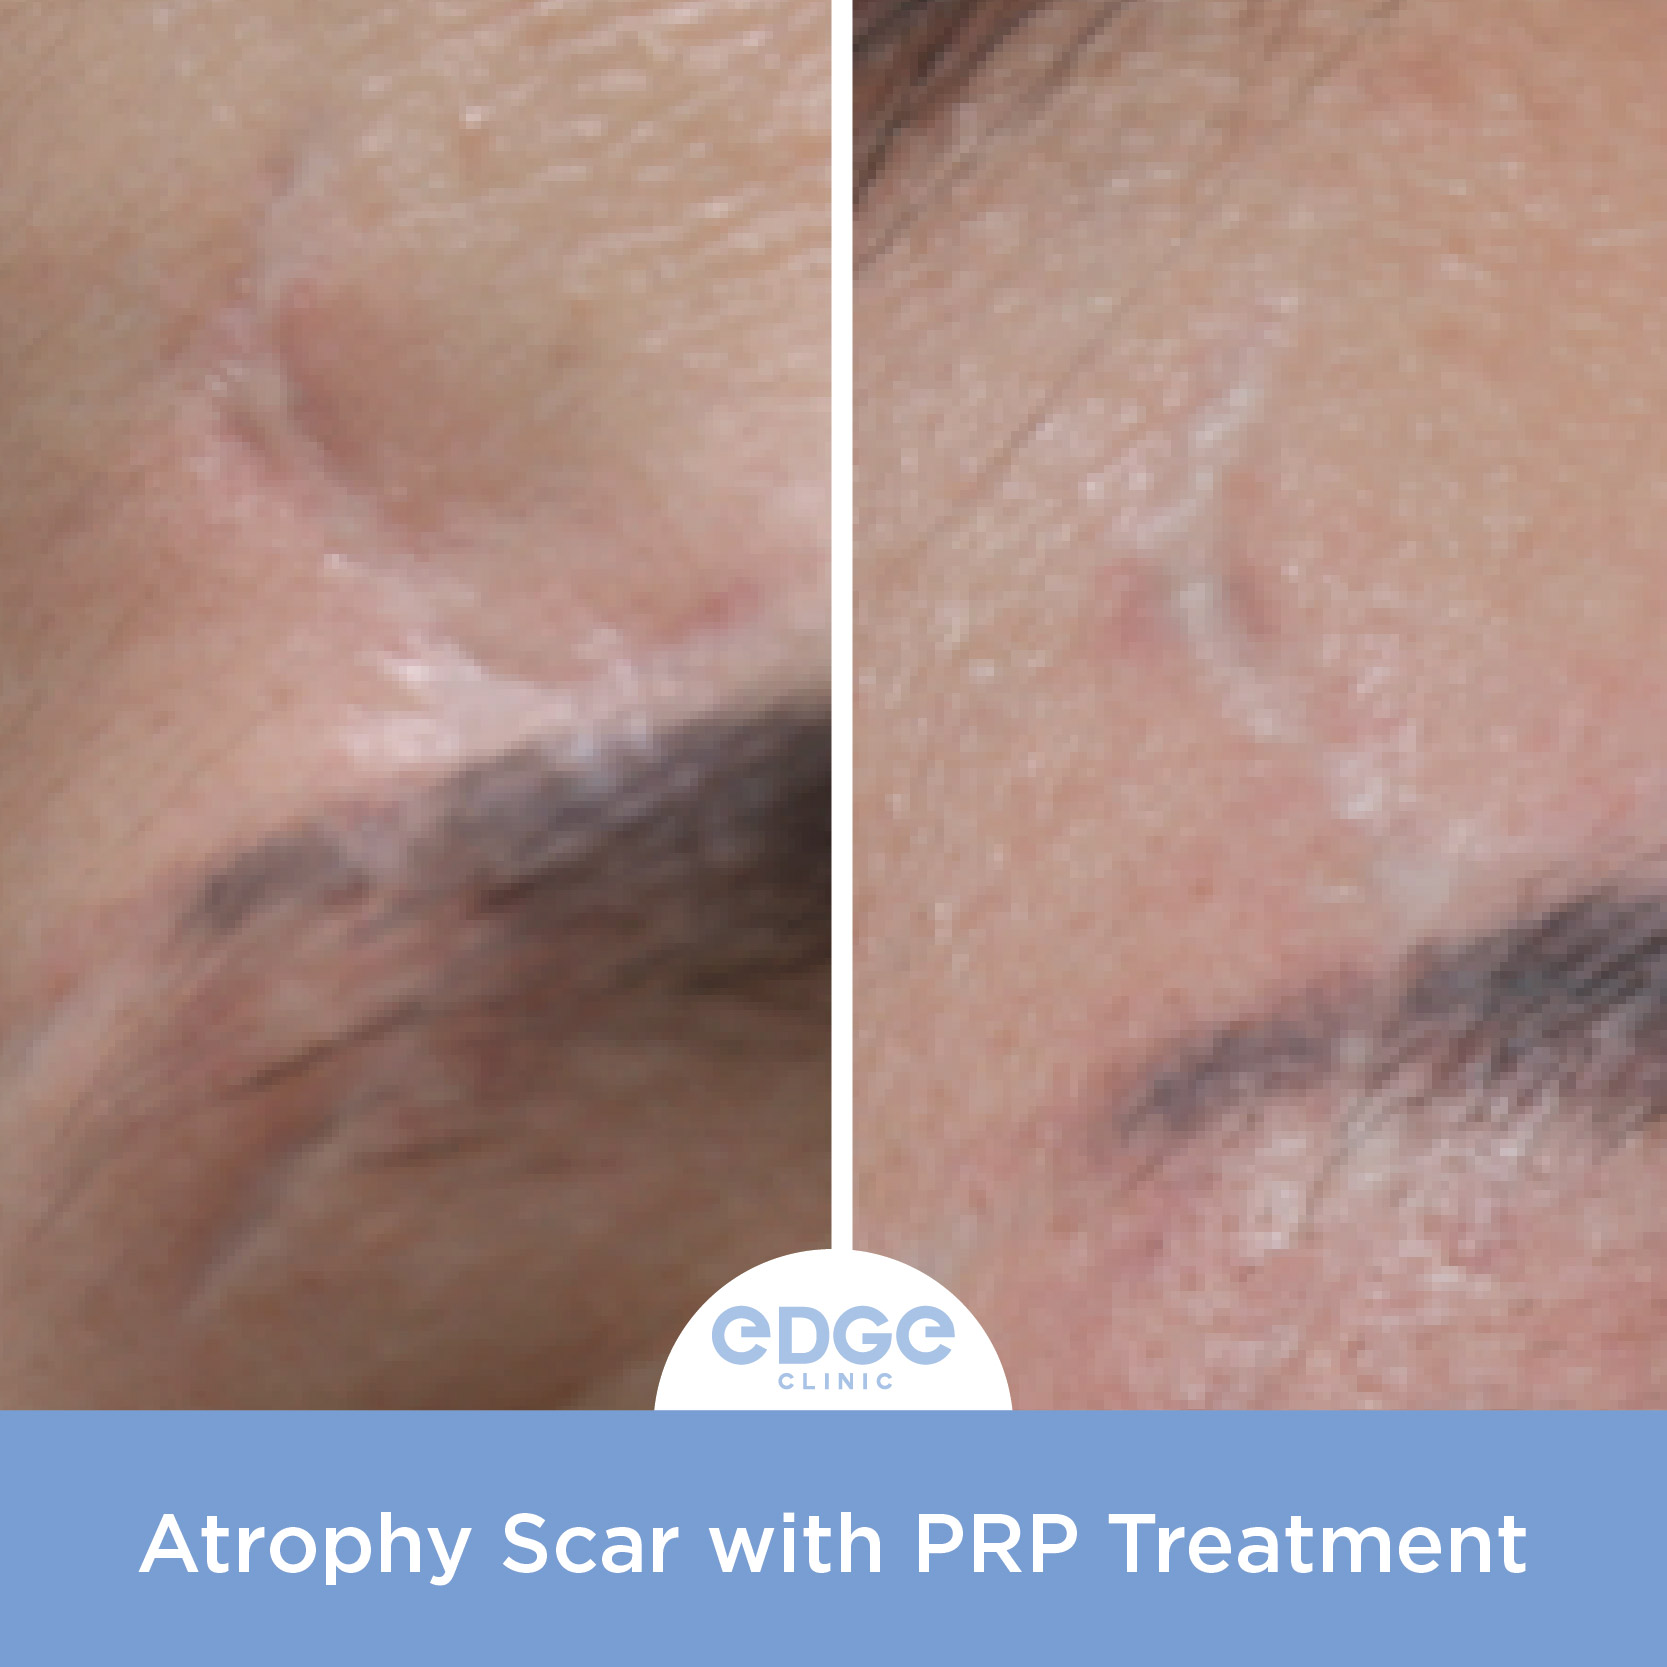 Atrophy Scar with PRP Treatment